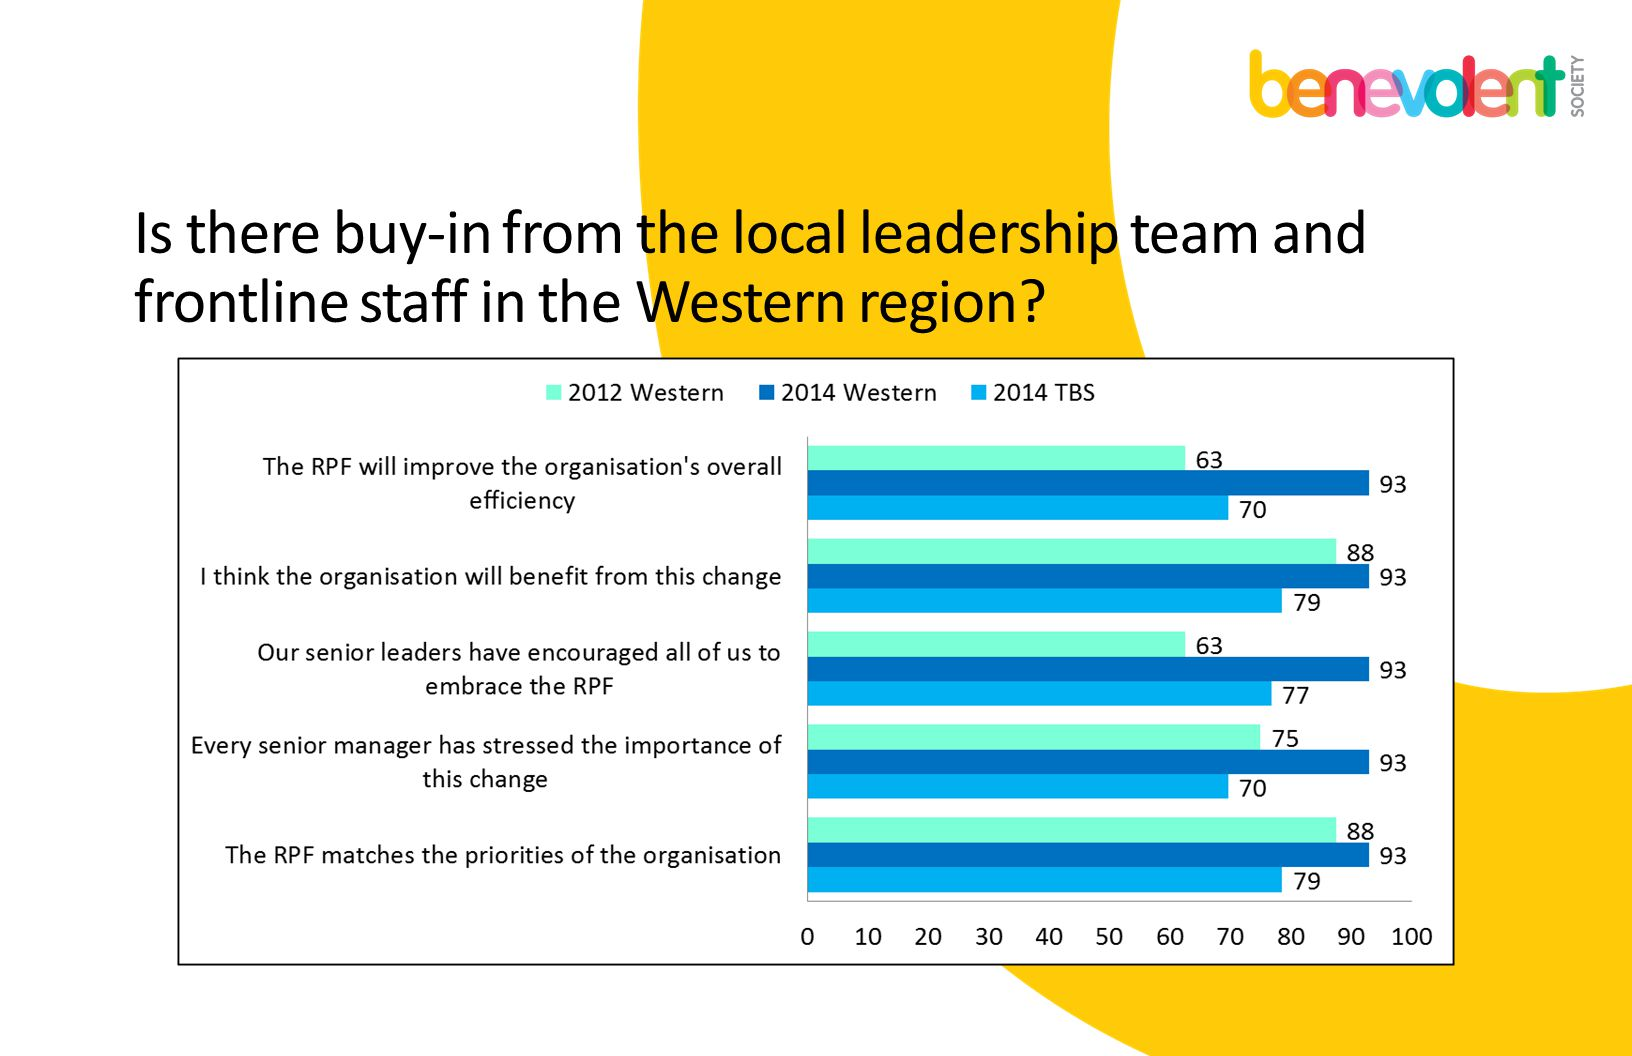 Is there buy-in from the local leadership team and frontline staff in the Western region